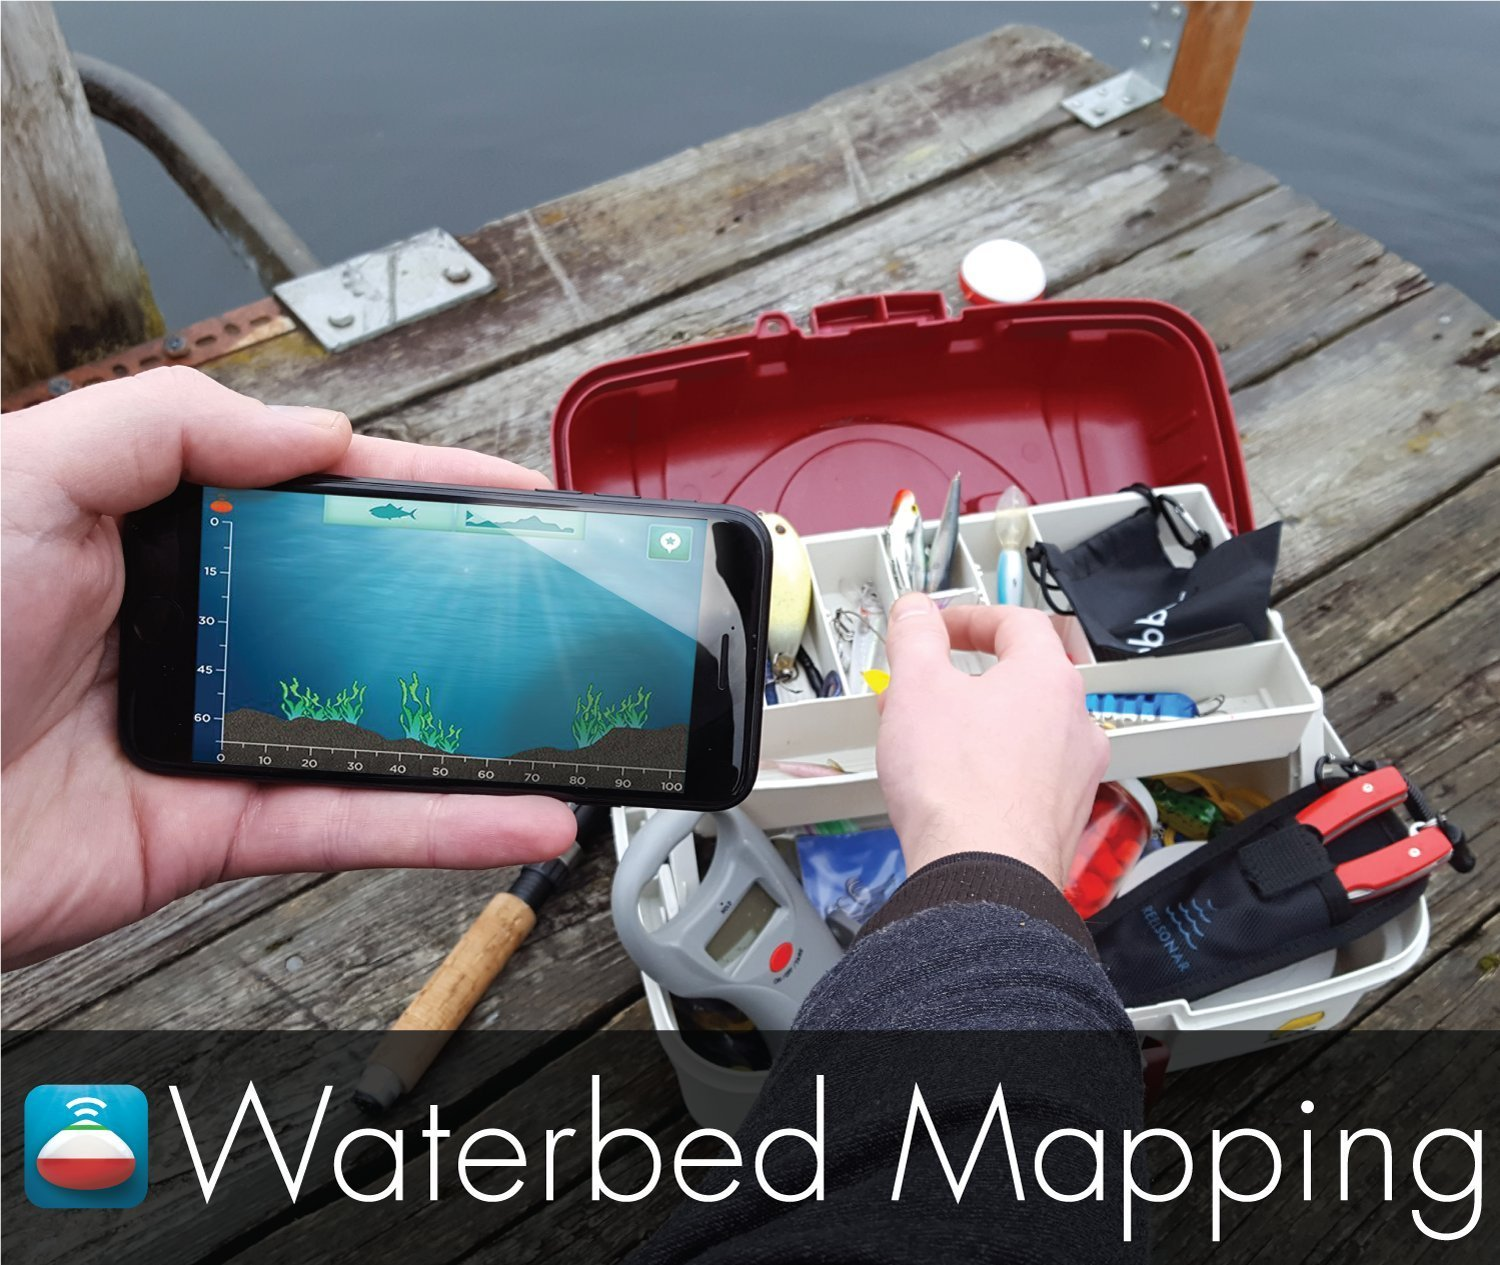 Second Best Portable Fishfinder iBobber Wireless Bluetooth Smart Fish Finder for iOS and Android devices